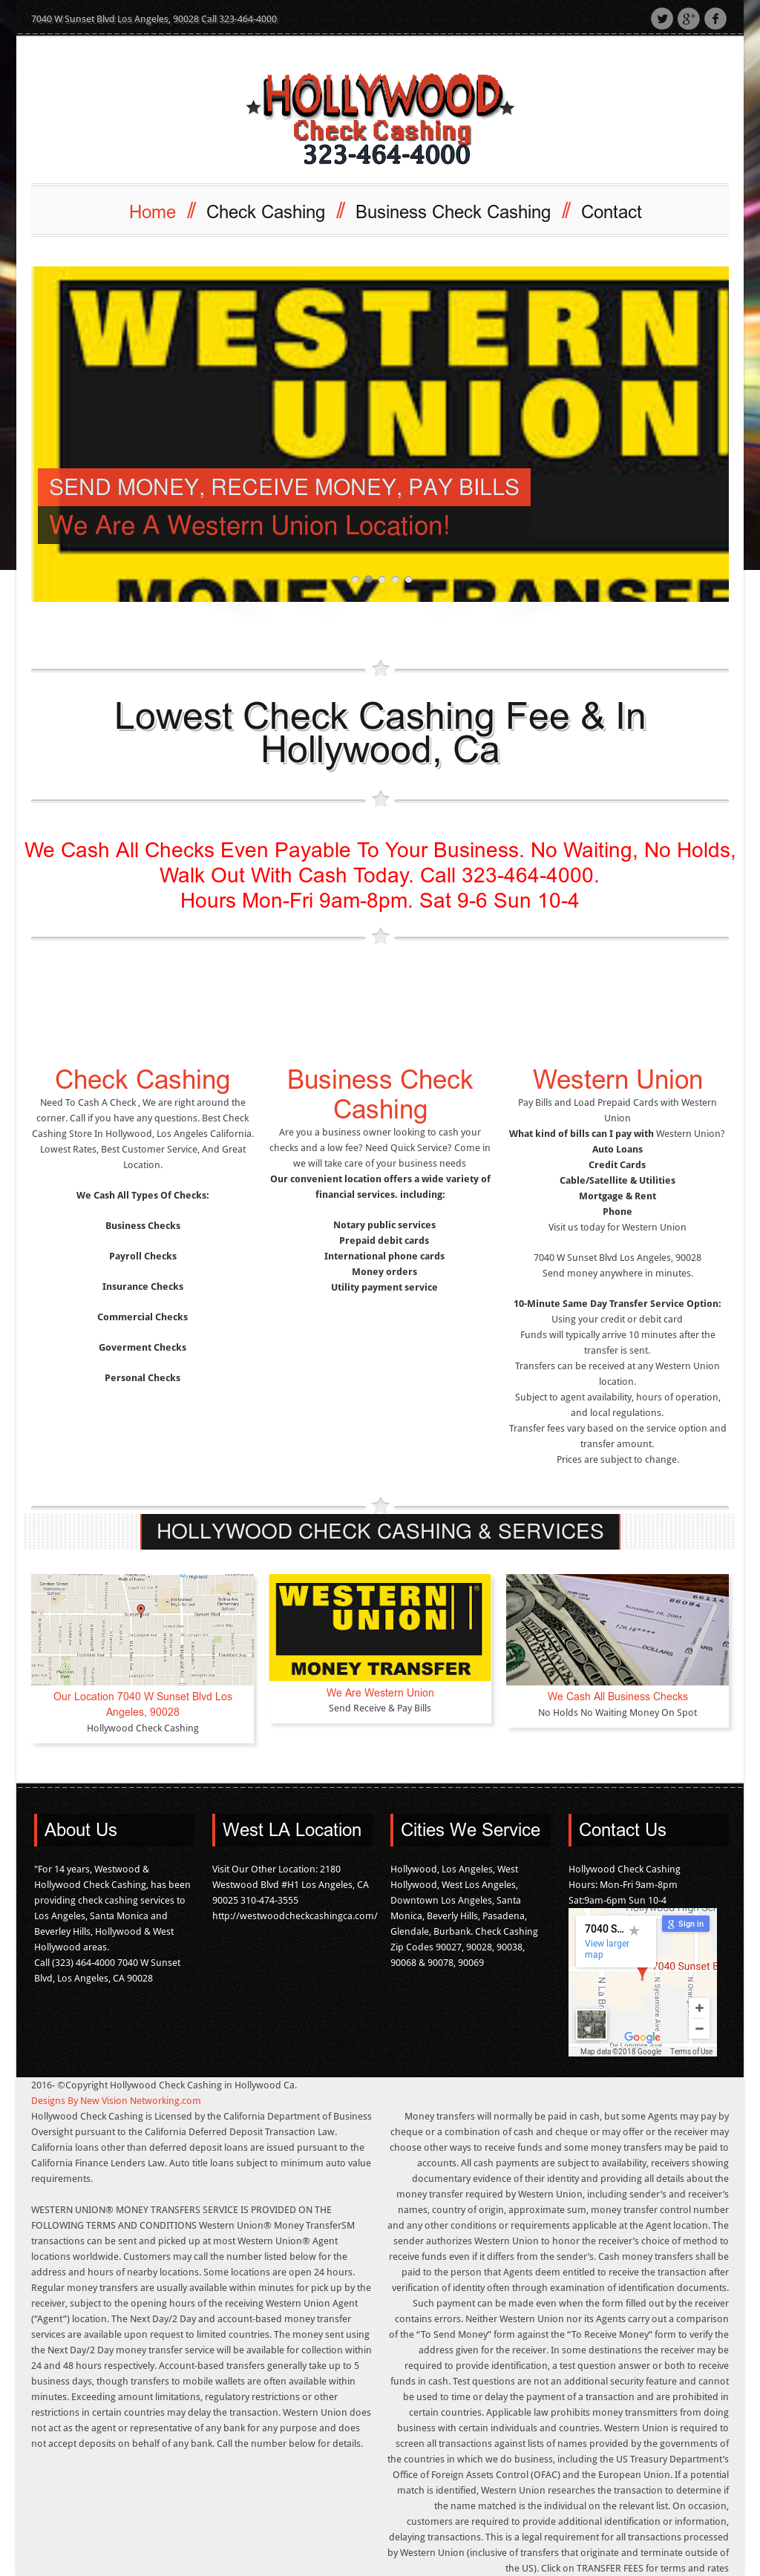 Hollywood Check Cashing Competitors, Revenue and Employees - Owler